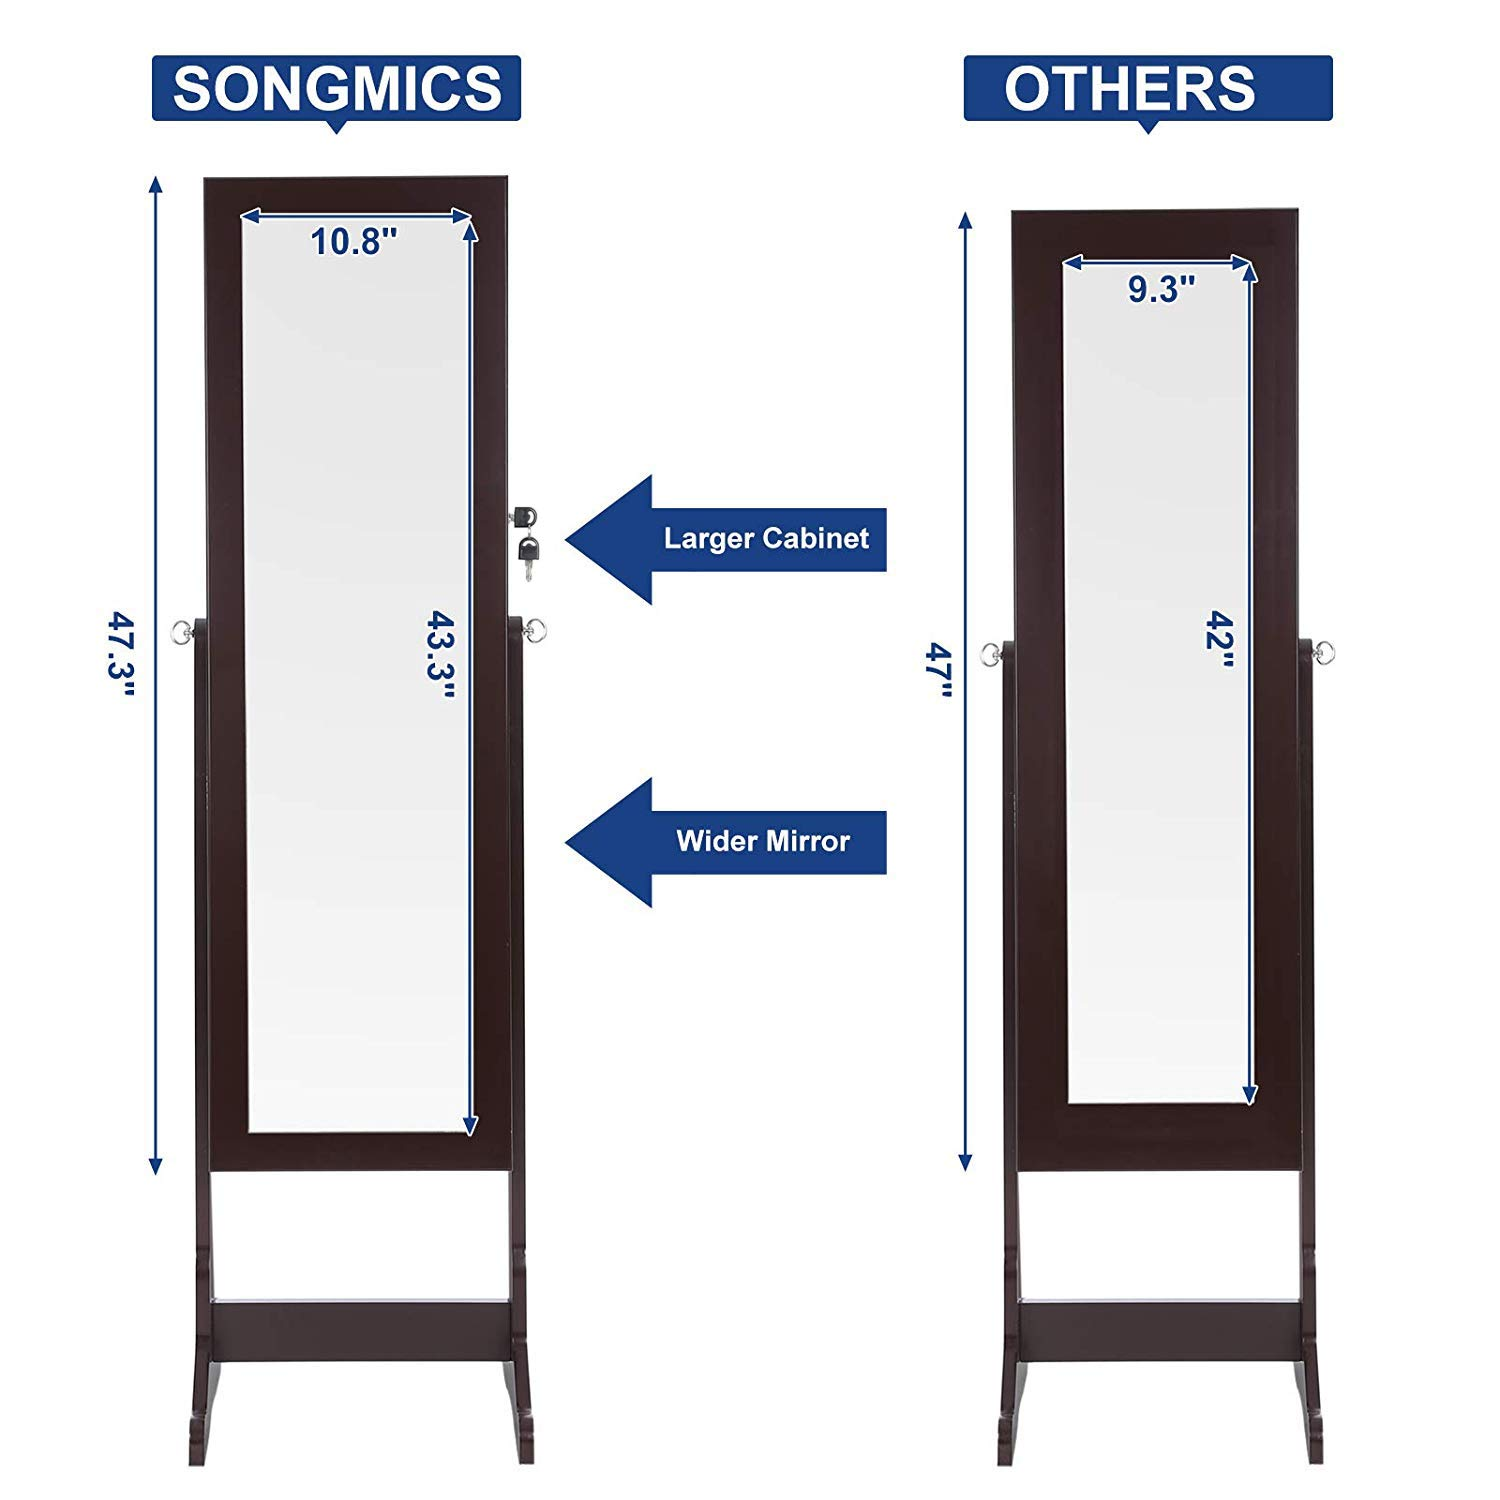 SONGMICS 6 LEDs Mirror Jewelry Cabinet Lockable Standing Mirrored Jewelry Armoire Organizer 2 Drawers Brown UJJC94K by SONGMICS (Image #6)